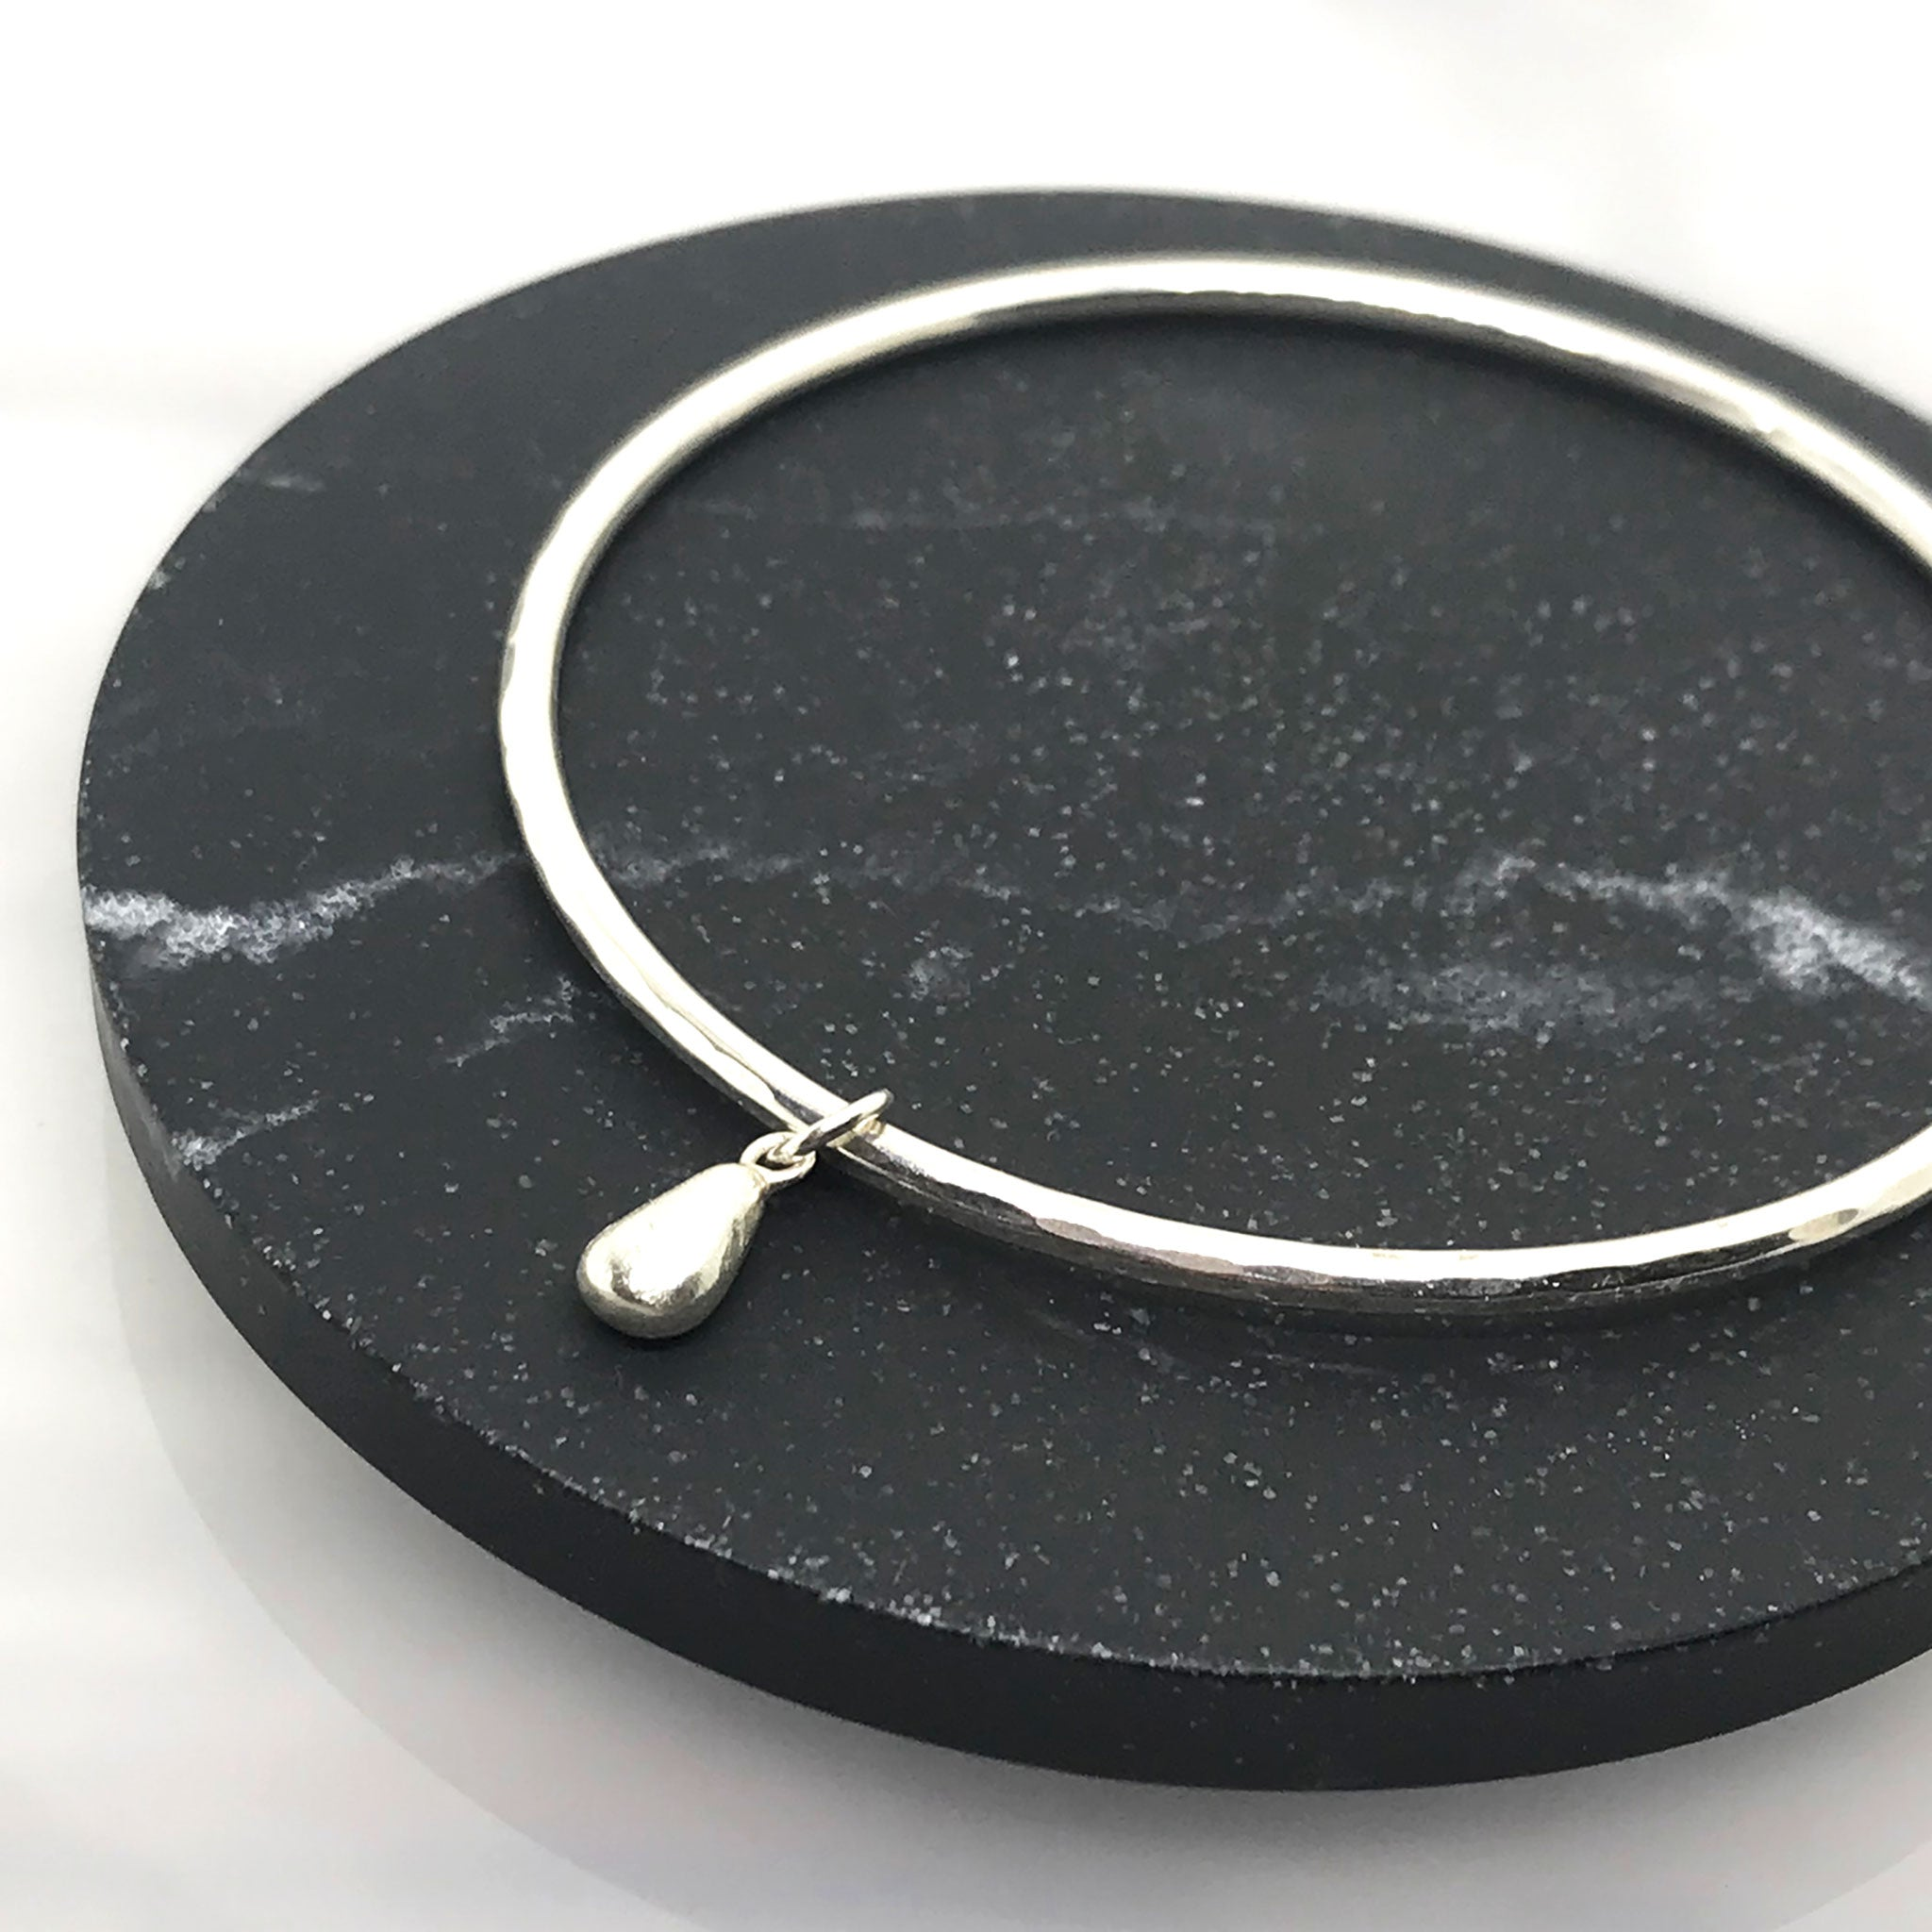 Silver Bangle with teardrop Charm - kriket broadhurst jewellery made in Sydney